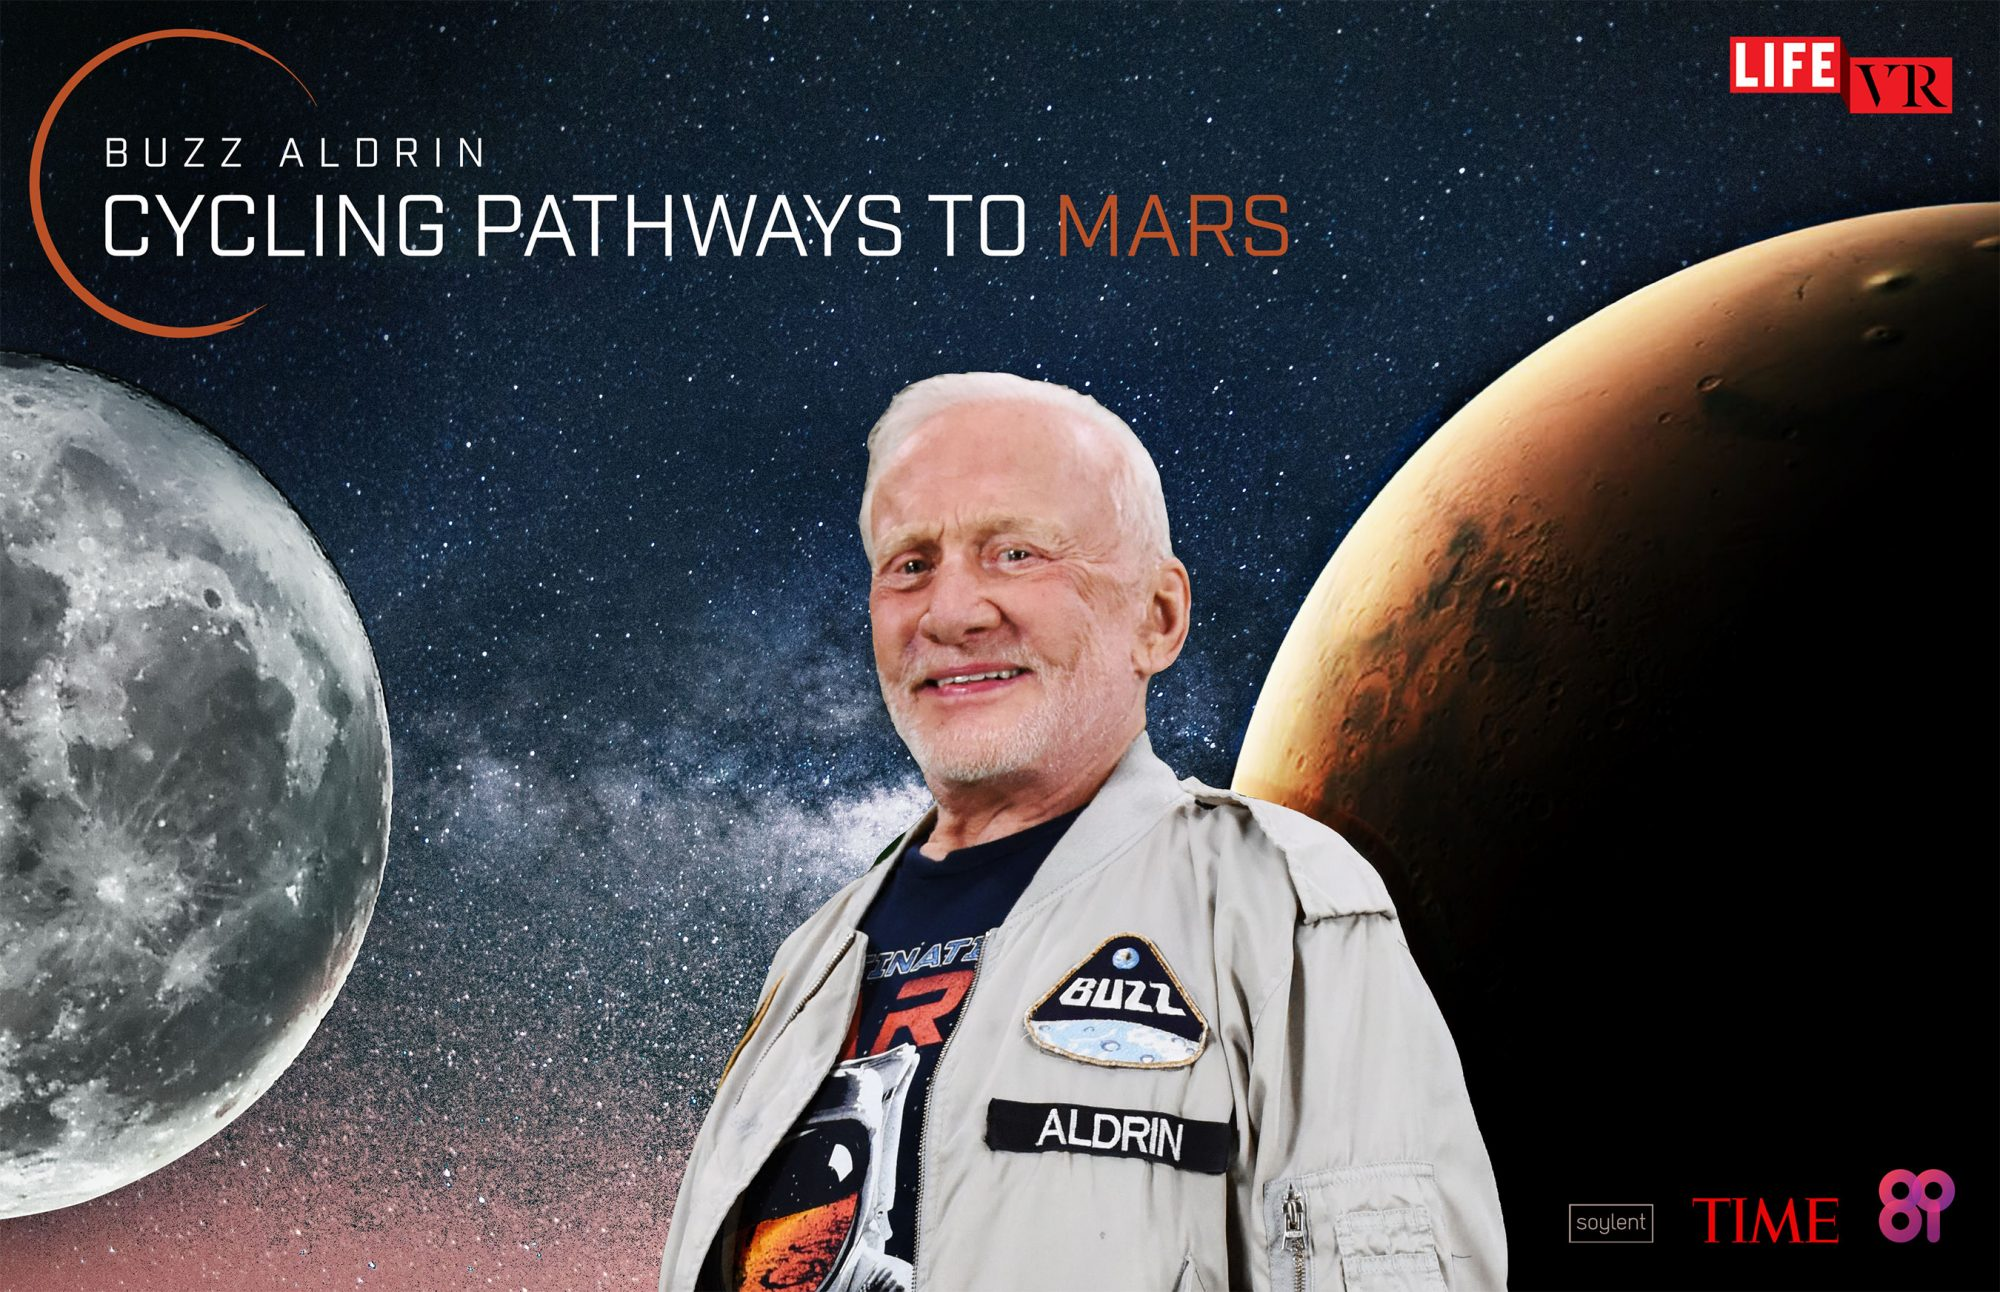 buzz-aldrin-cycling-pathways-to-mars-vr-poster-landscape